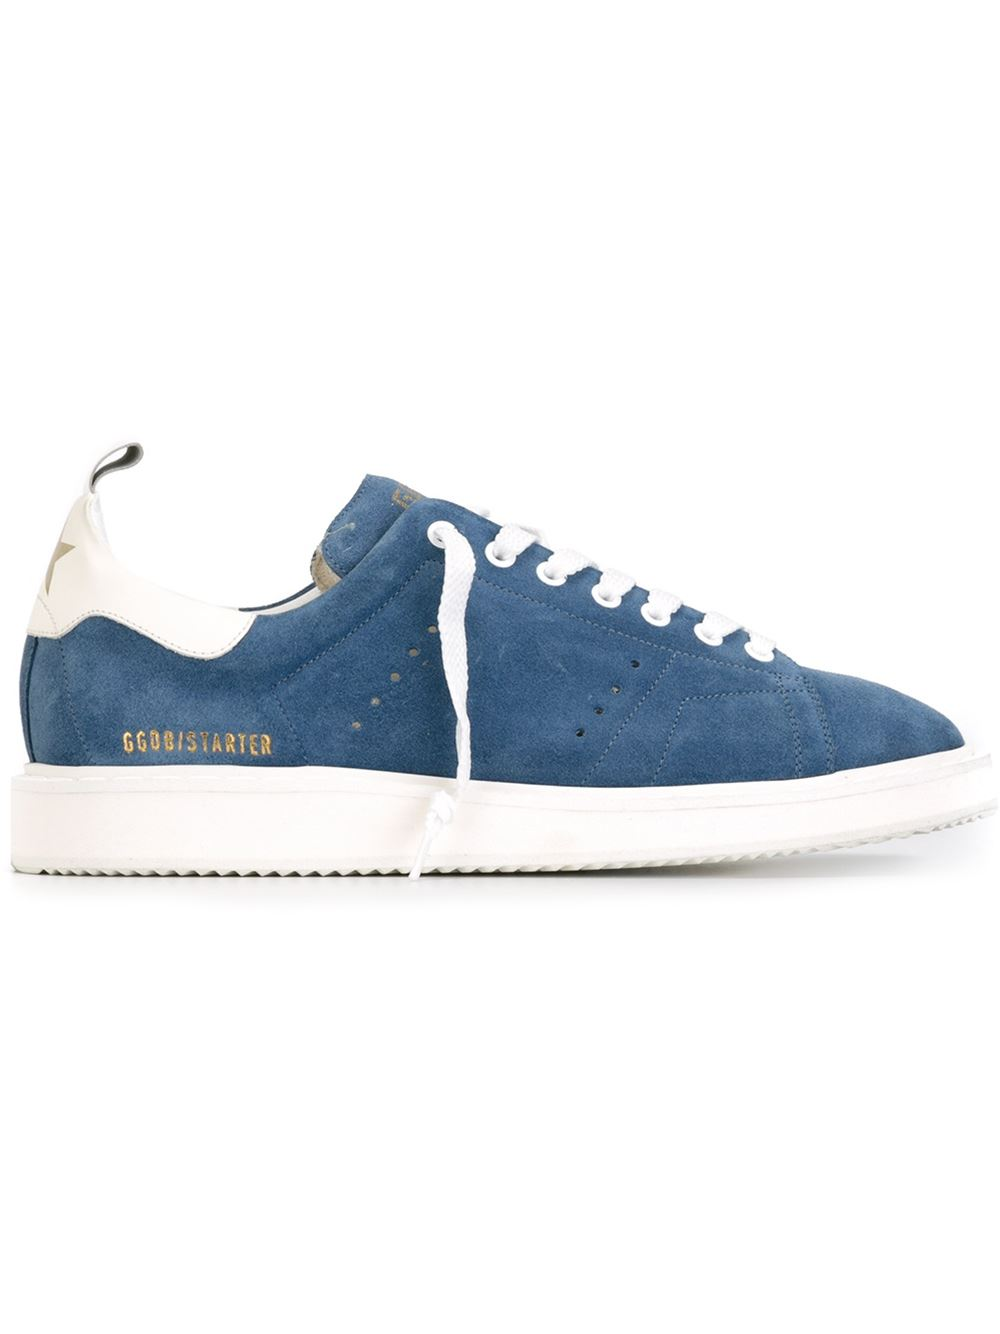 Golden Goose Women Starter Sneakers In Lake Blue Suede With White Leather